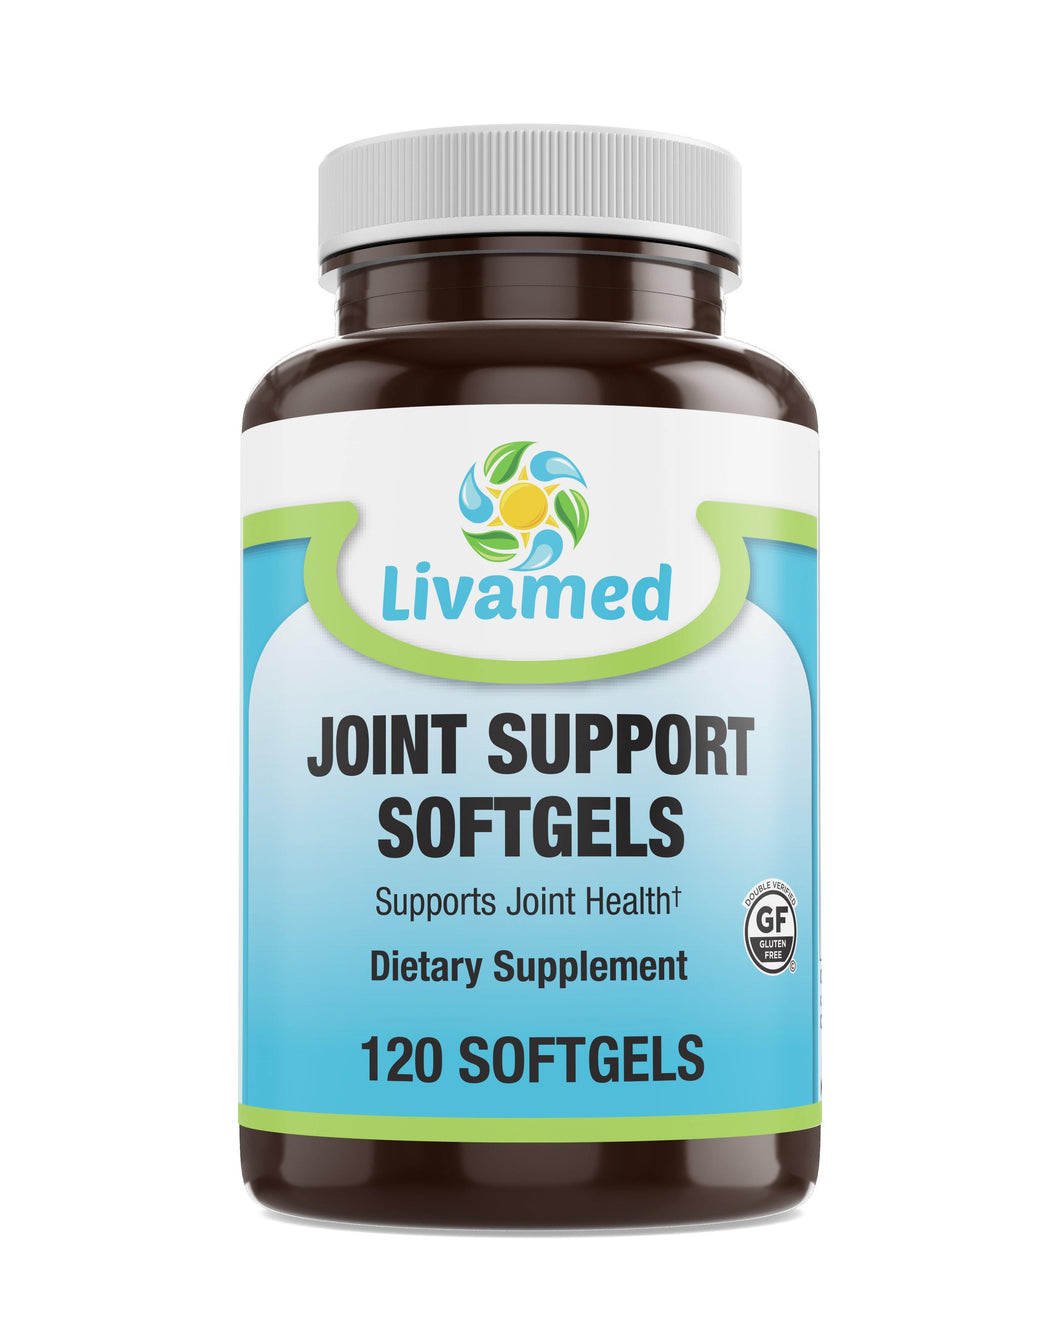 Livamed - Joint Support Softgels 120 Count